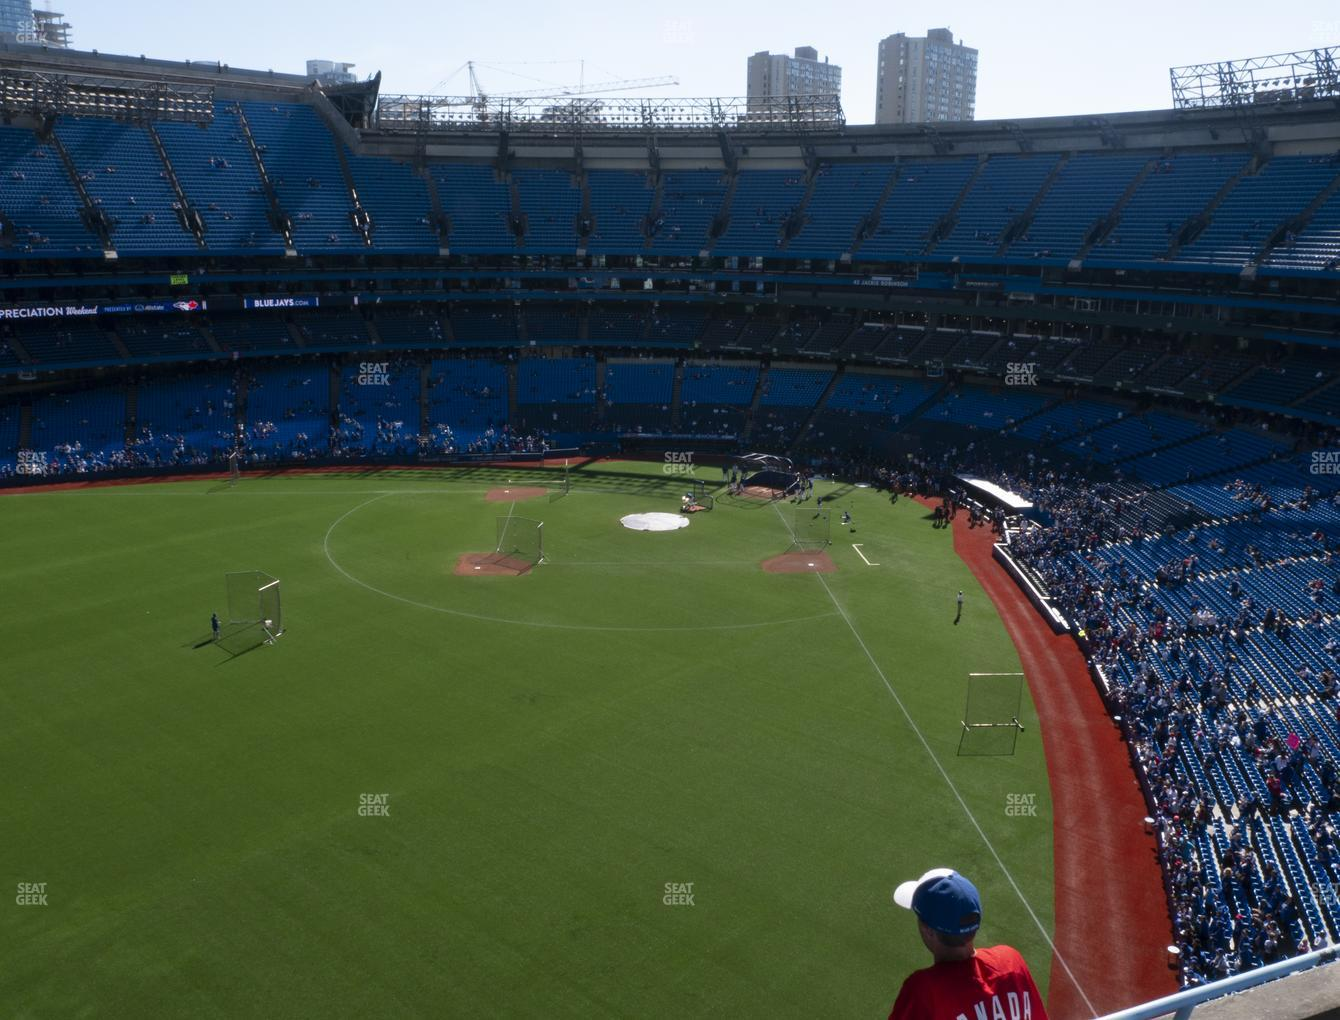 Toronto Blue Jays at Rogers Centre Section 541 R View